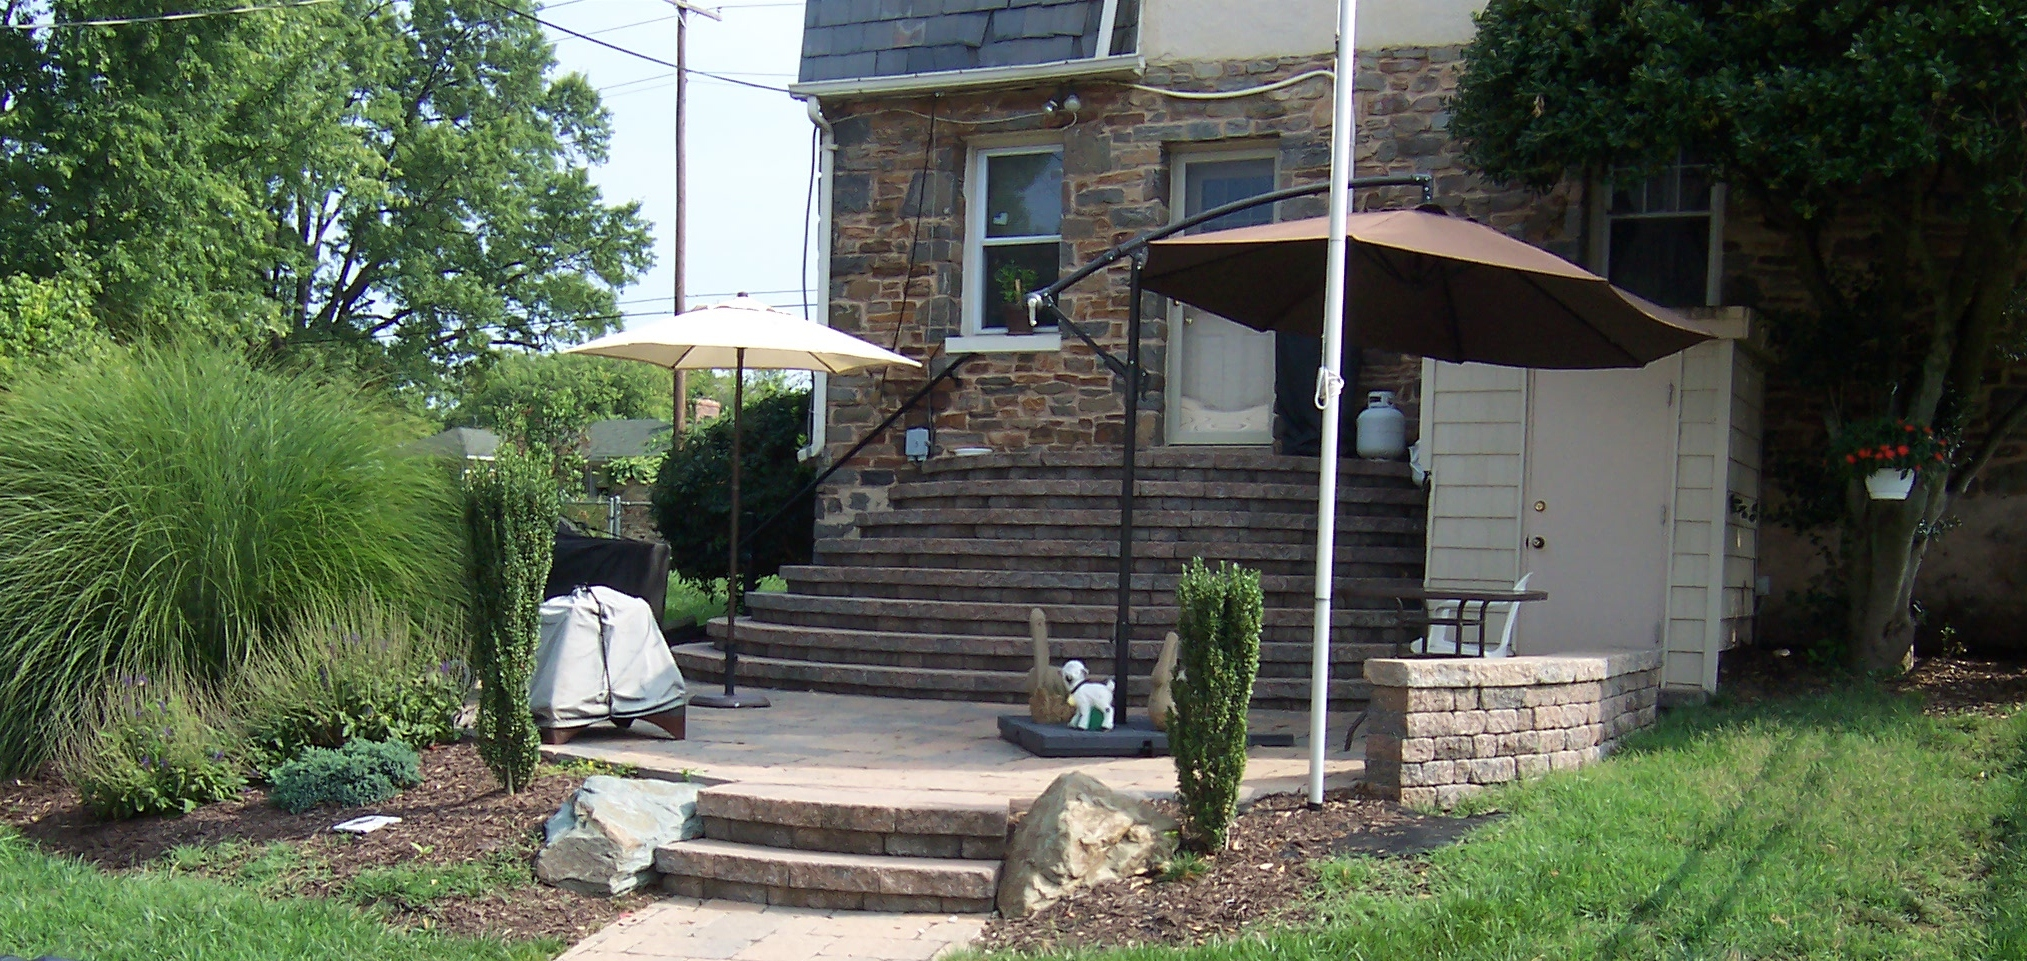 Half circle steps with patio